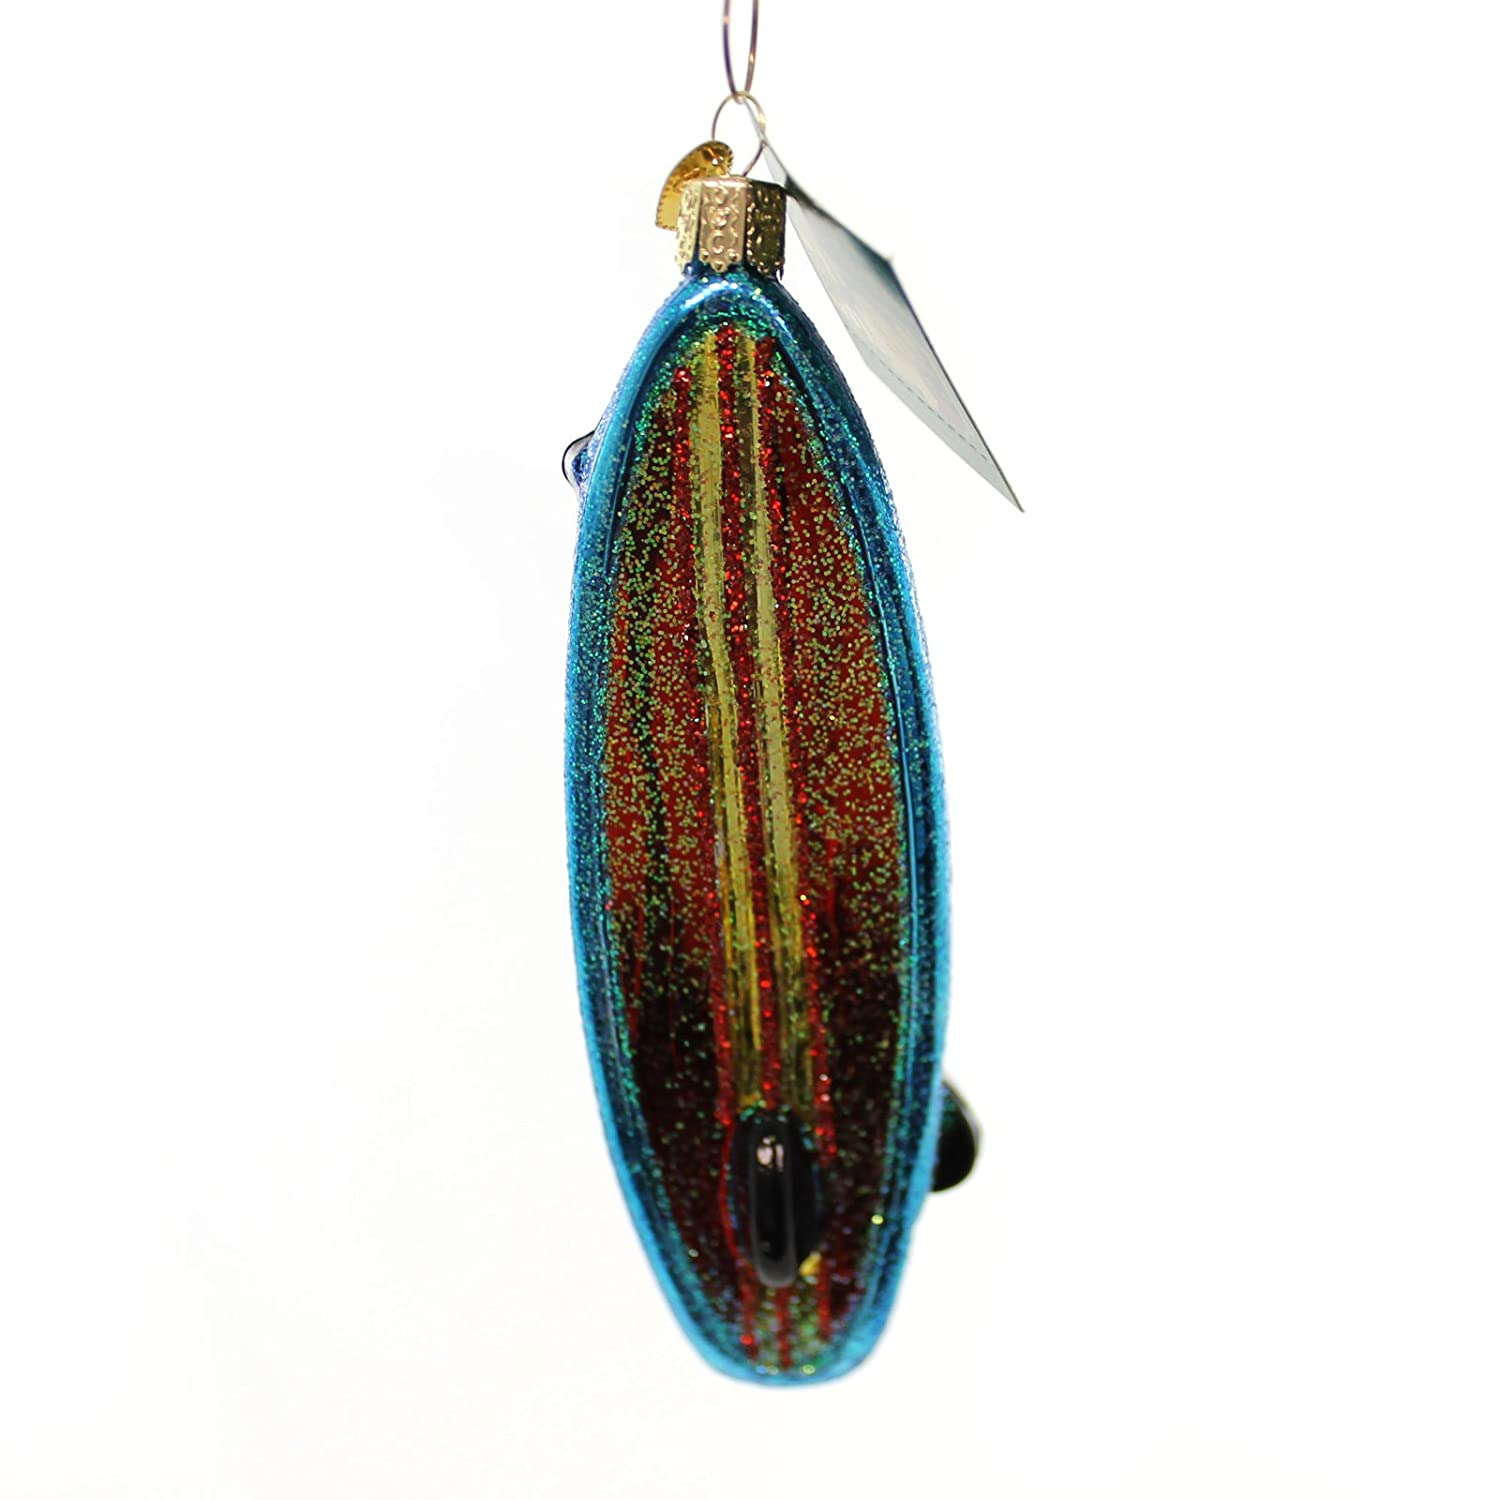 Stand up paddle board ornament - Amazon Com Old World Christmas Stand Up Paddle Board Glass Blown Ornament Home Kitchen